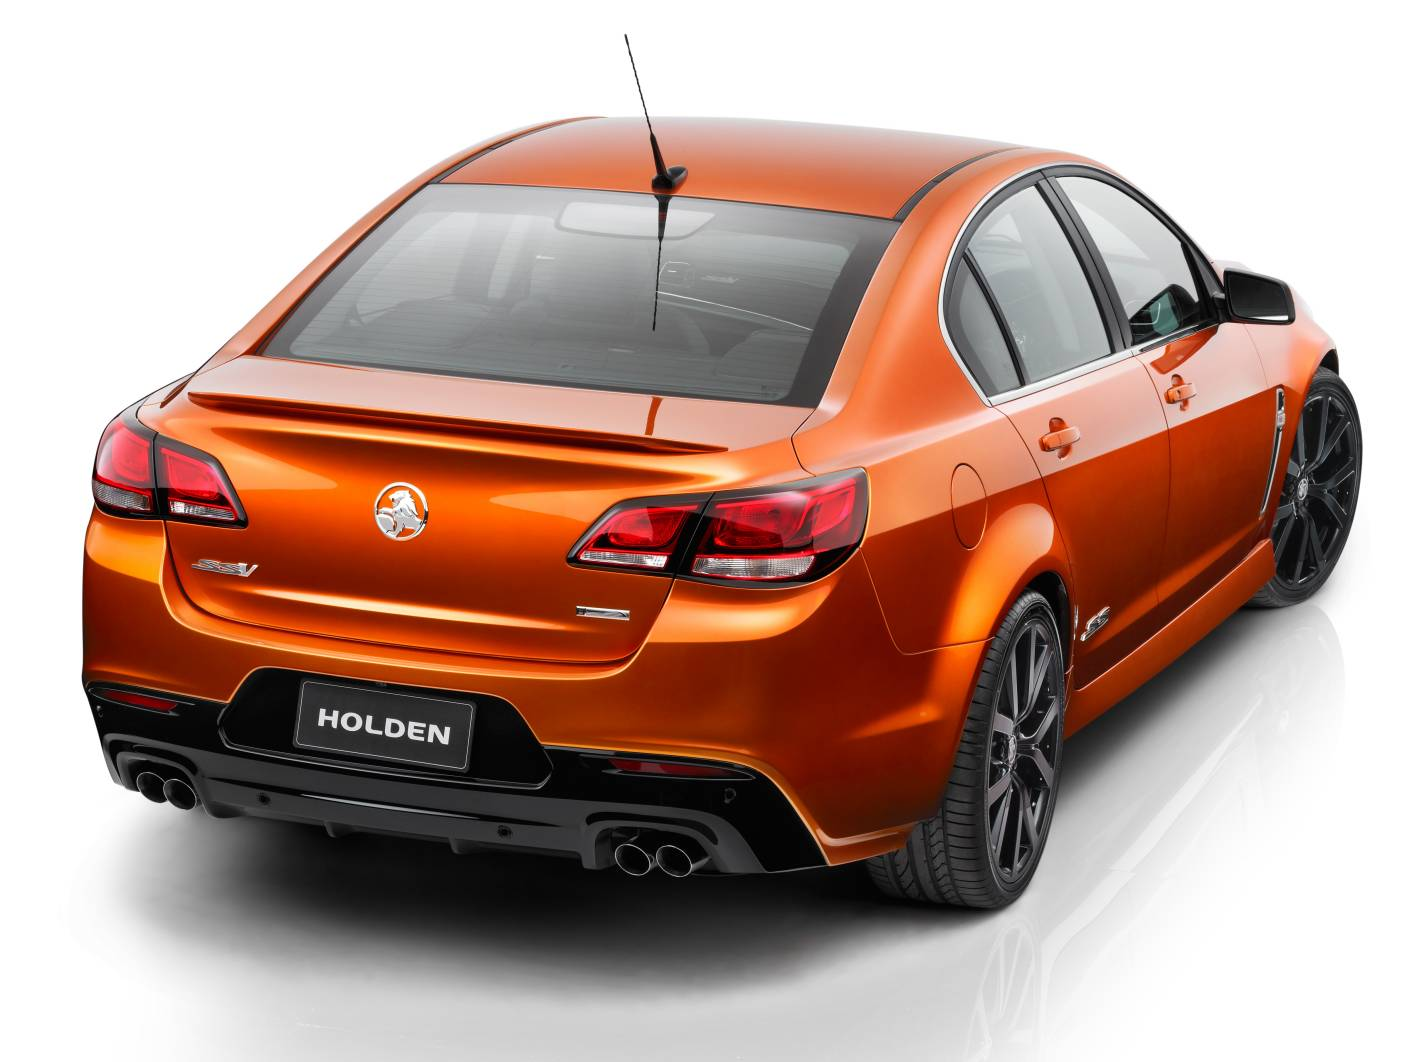 Holden Cars News Ss V To Feature 6 2l V8